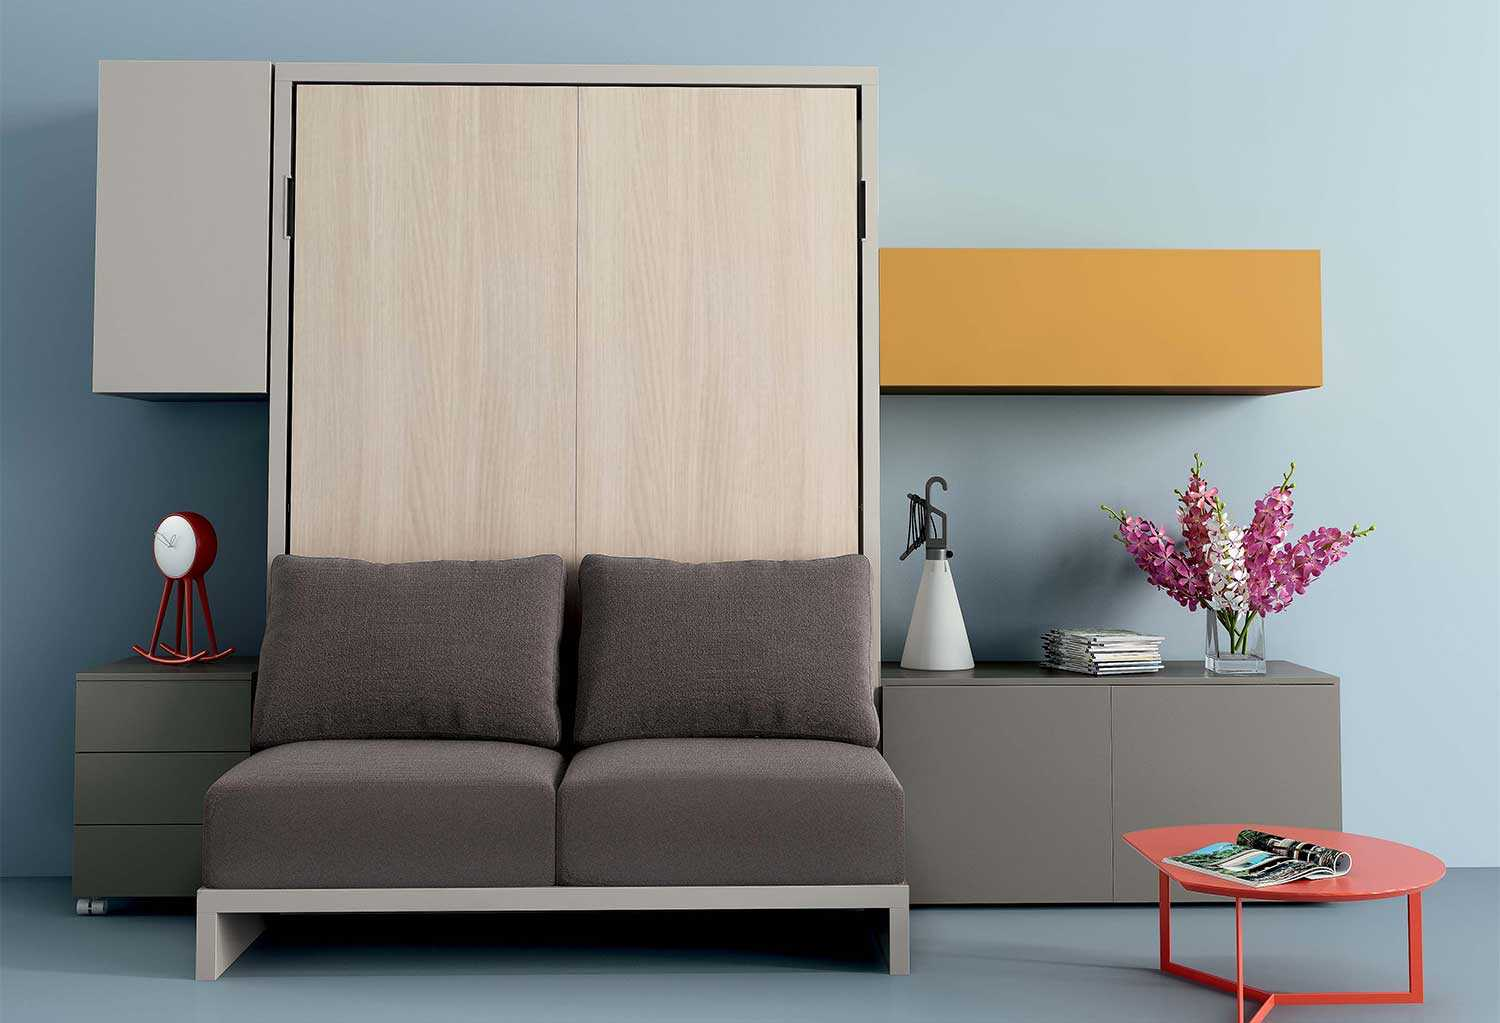 Davanti al letto poltroncina con mobile e tv picture of blu